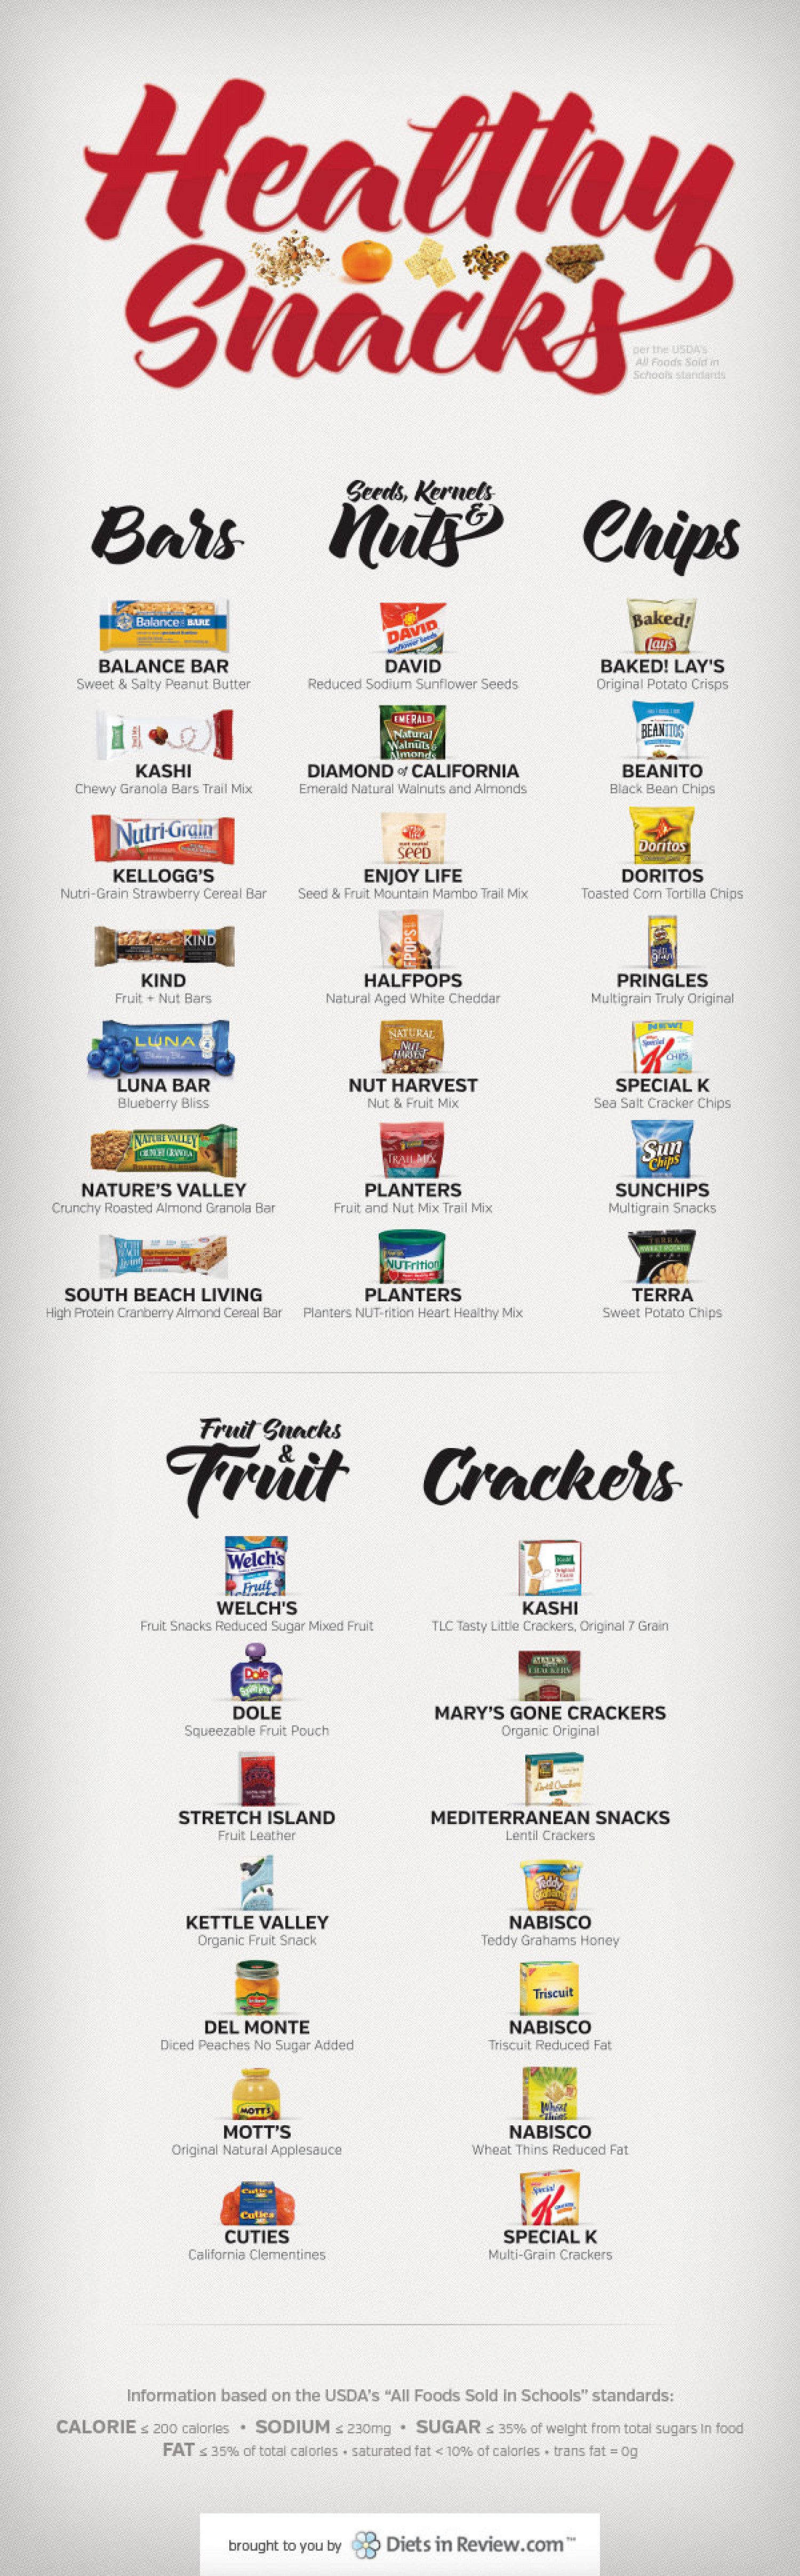 35 Kid-Friendly Snacks that Meet the New Smart Snacks in Schools Guidelines Infographic